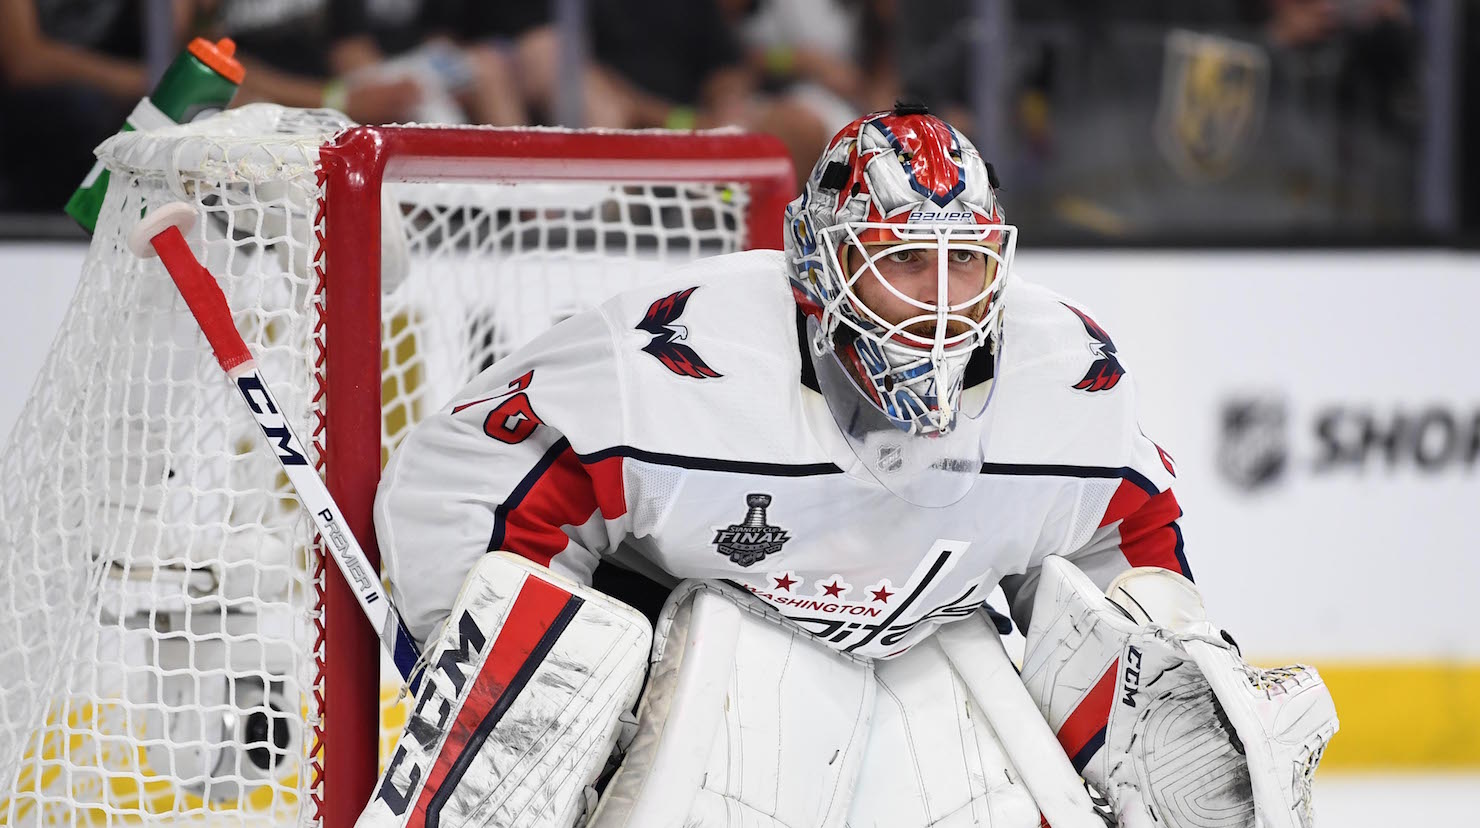 Braden Holtby Can Lead The Washington Capitals To Their First Stanley Cup 1bbacfdefa6a